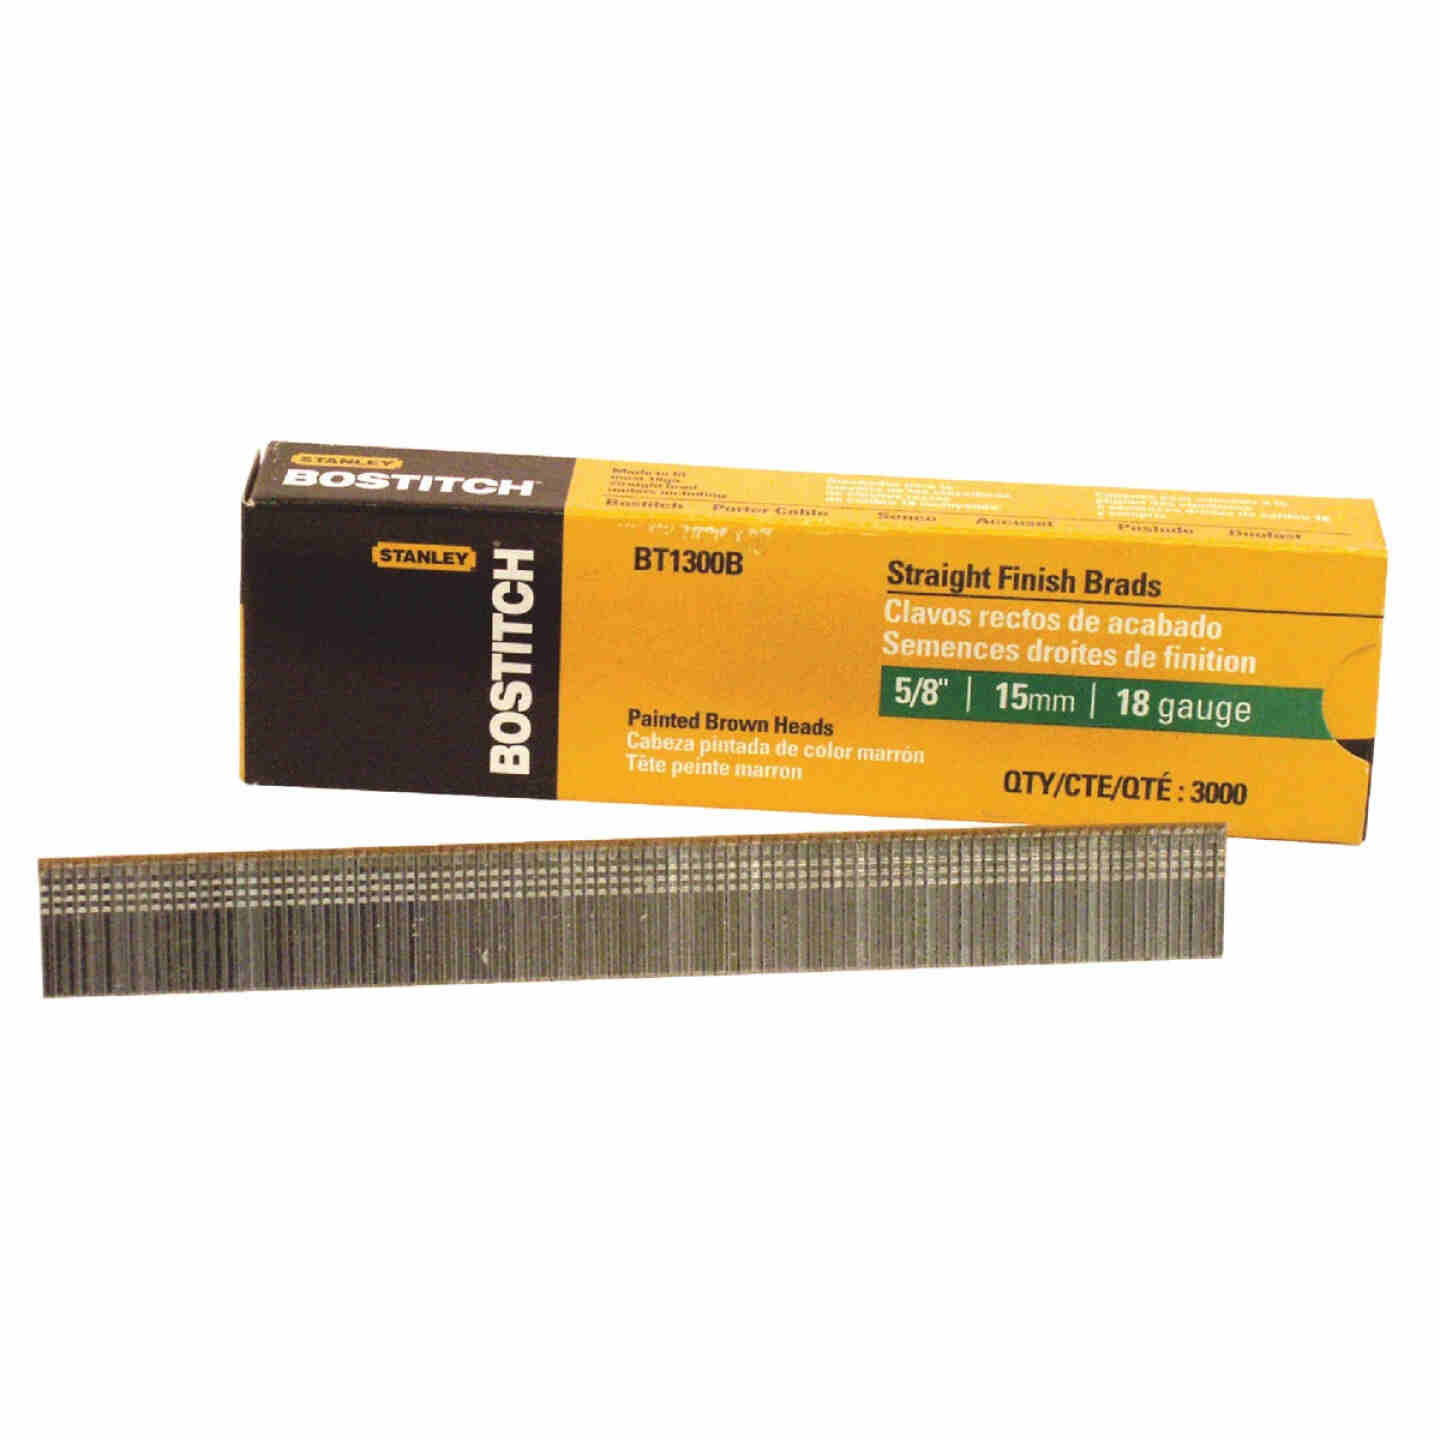 Bostitch 18-Gauge Coated Brad Nail, 5/8 In. (3000 Ct.) Image 1